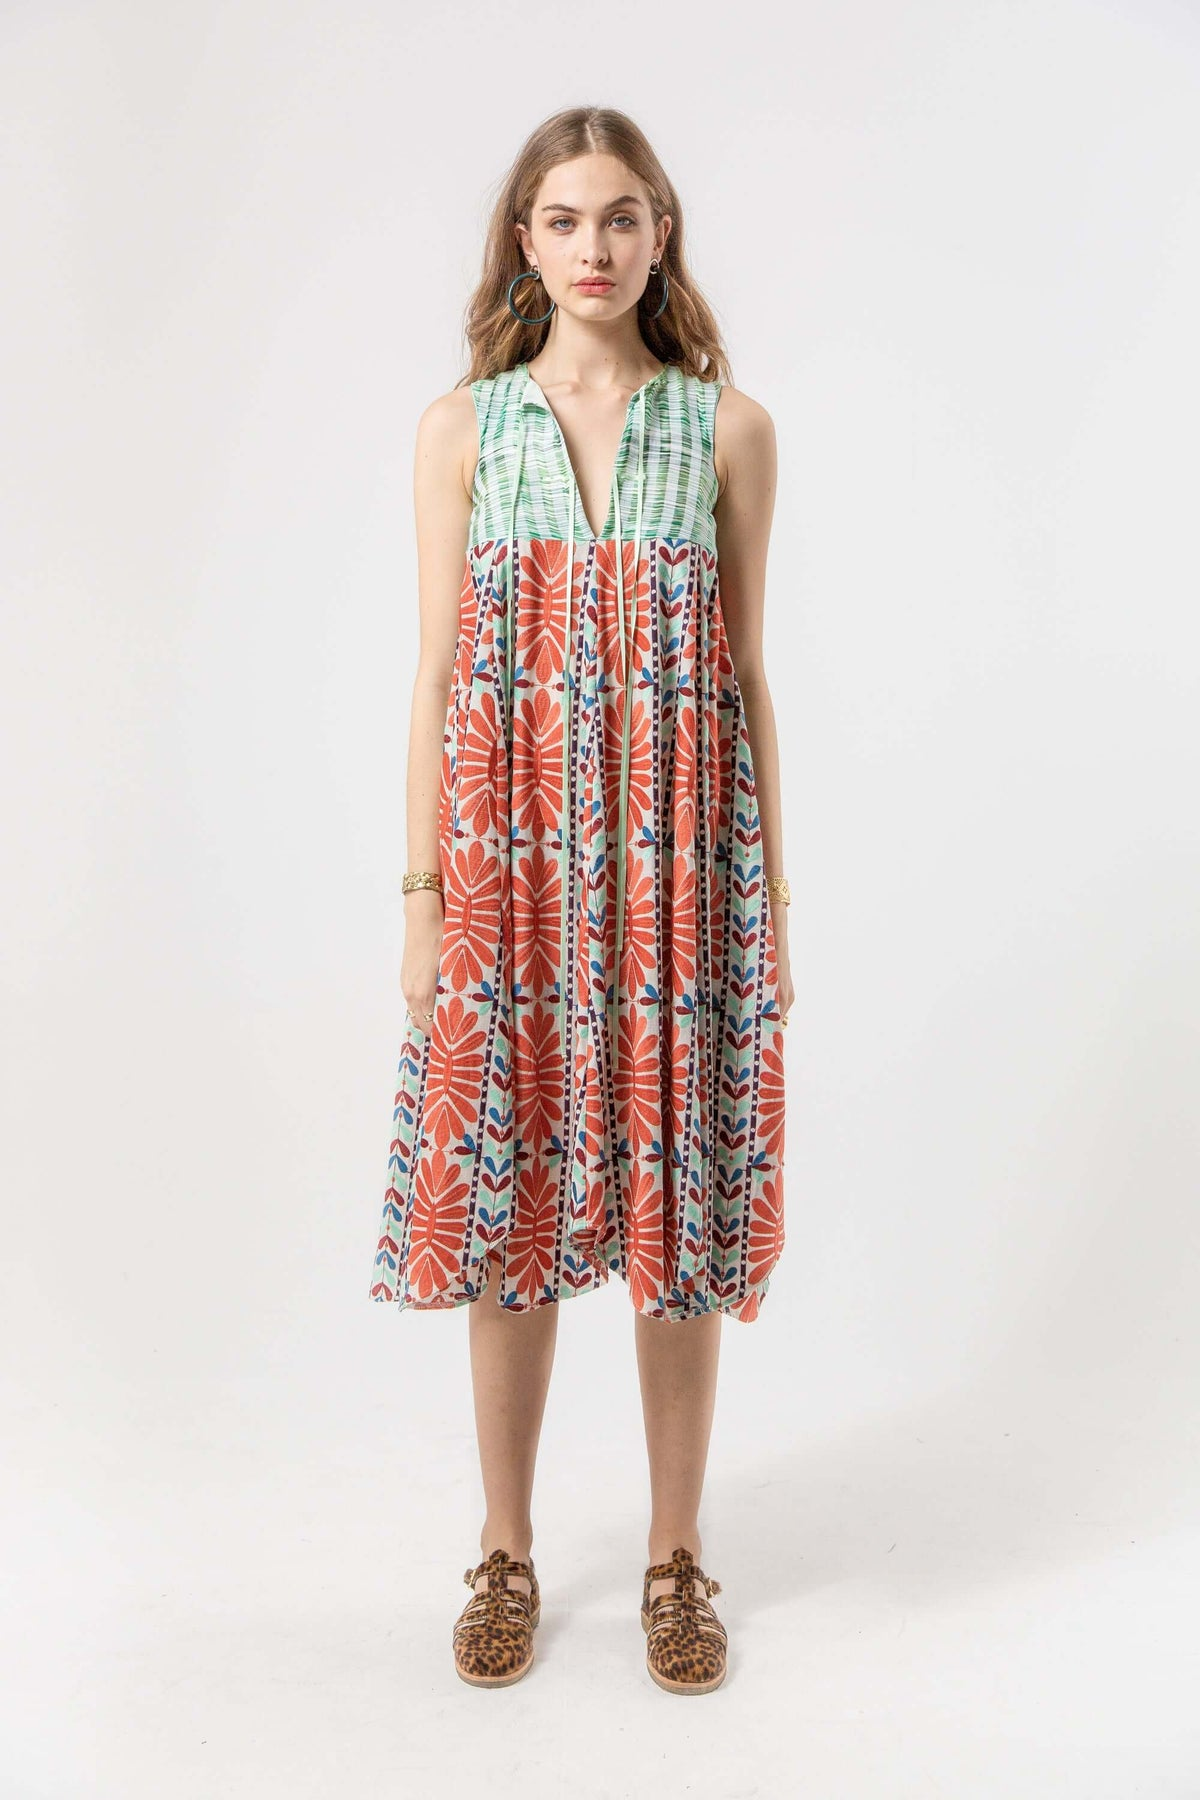 Celeste dress in mexican embroidery